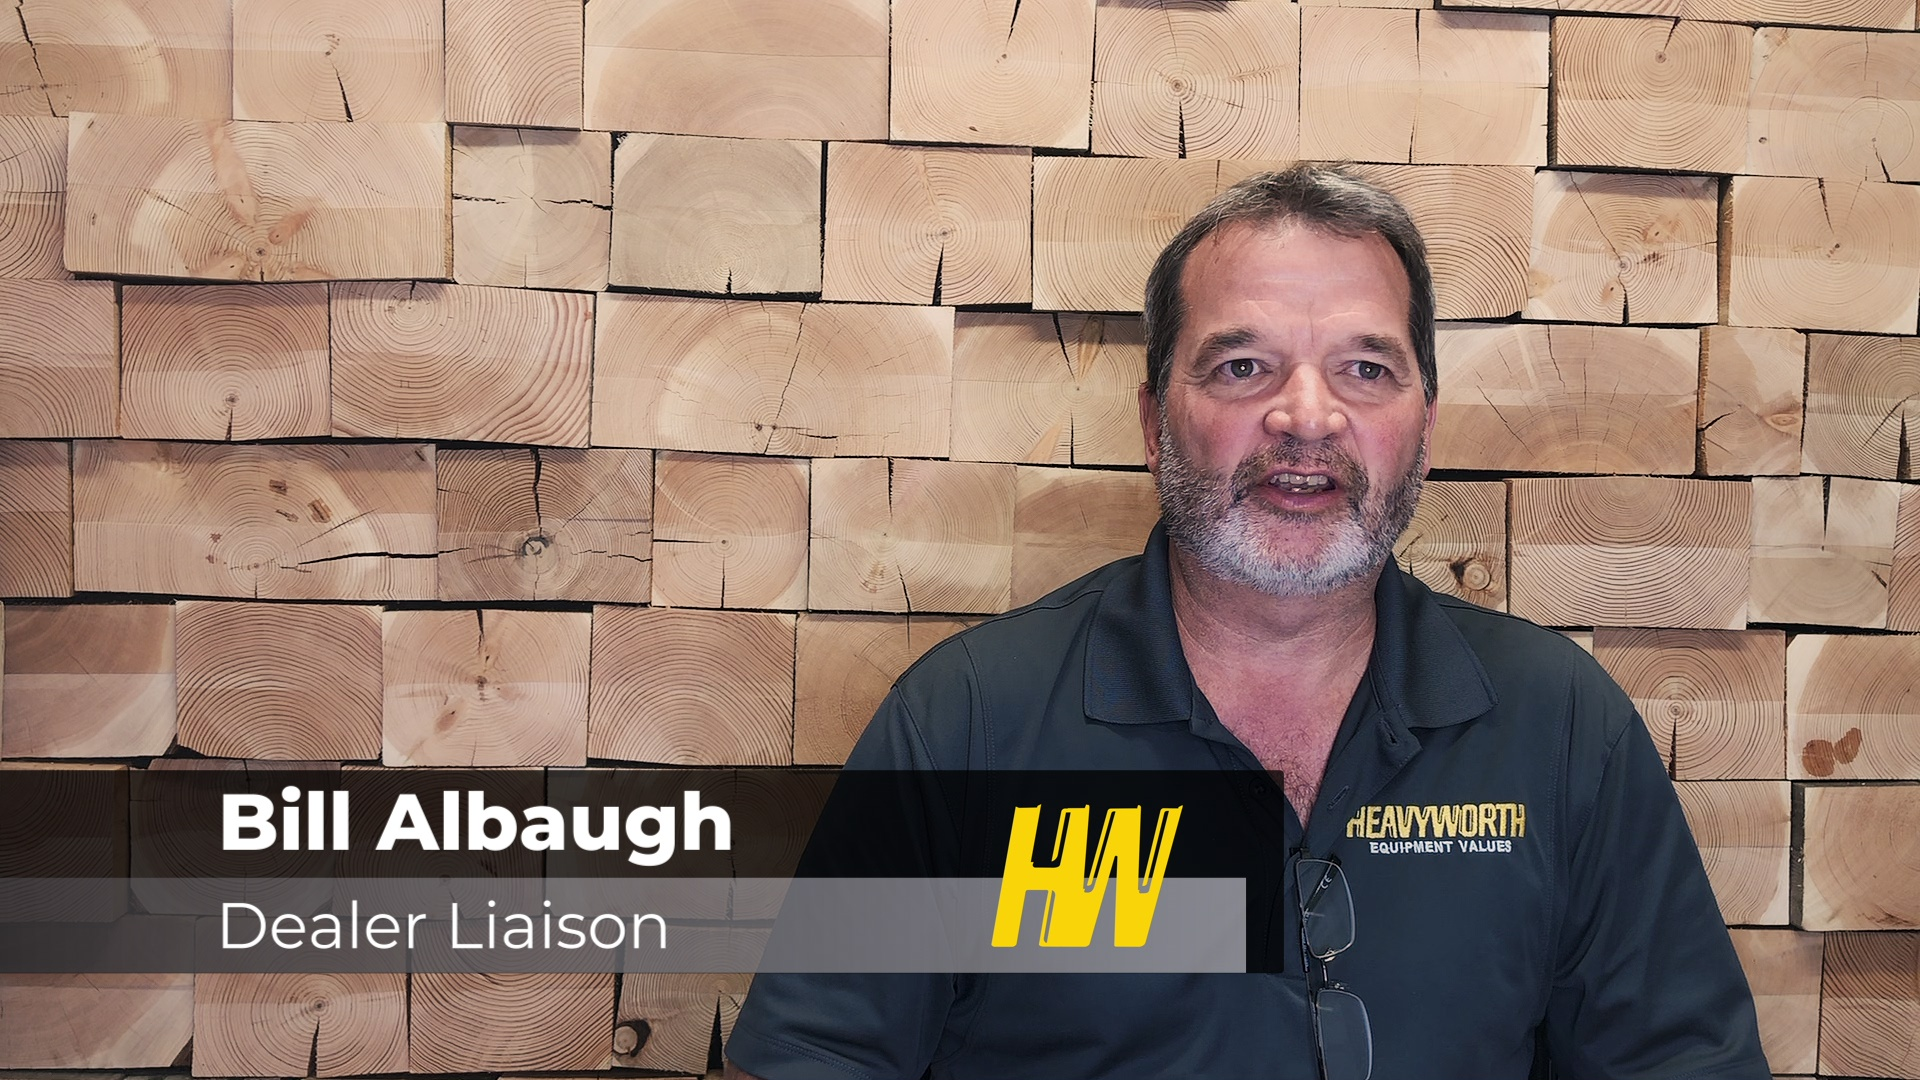 Bill Albaugh explains ways to get the most favorable valuation for heavy equipment